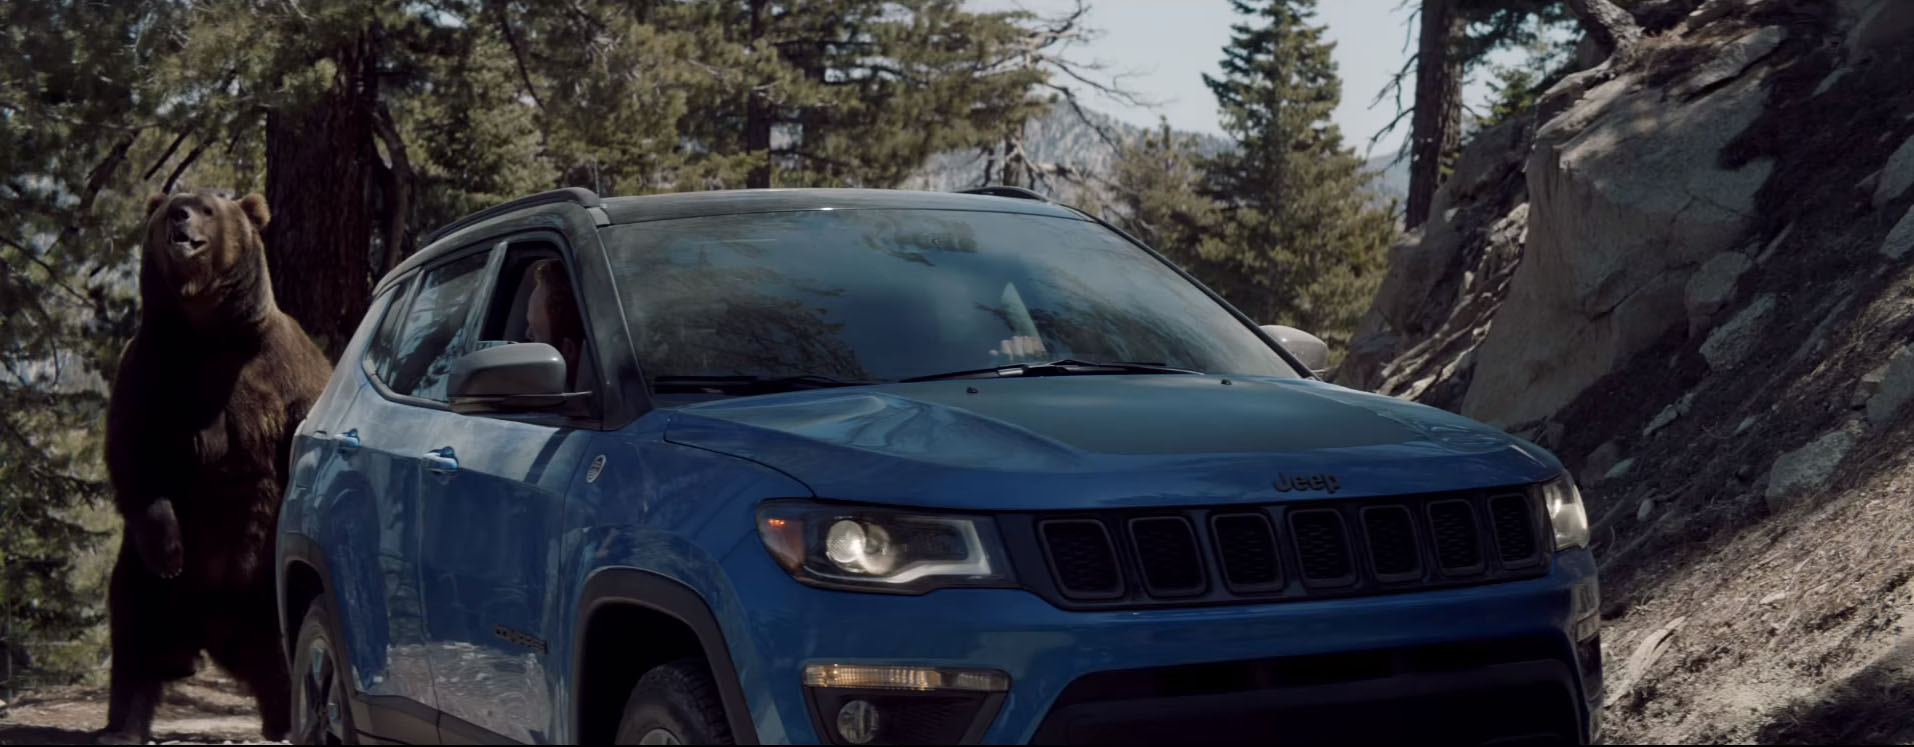 best ads that were ever made 8 photos 2017 jeep compass commercial